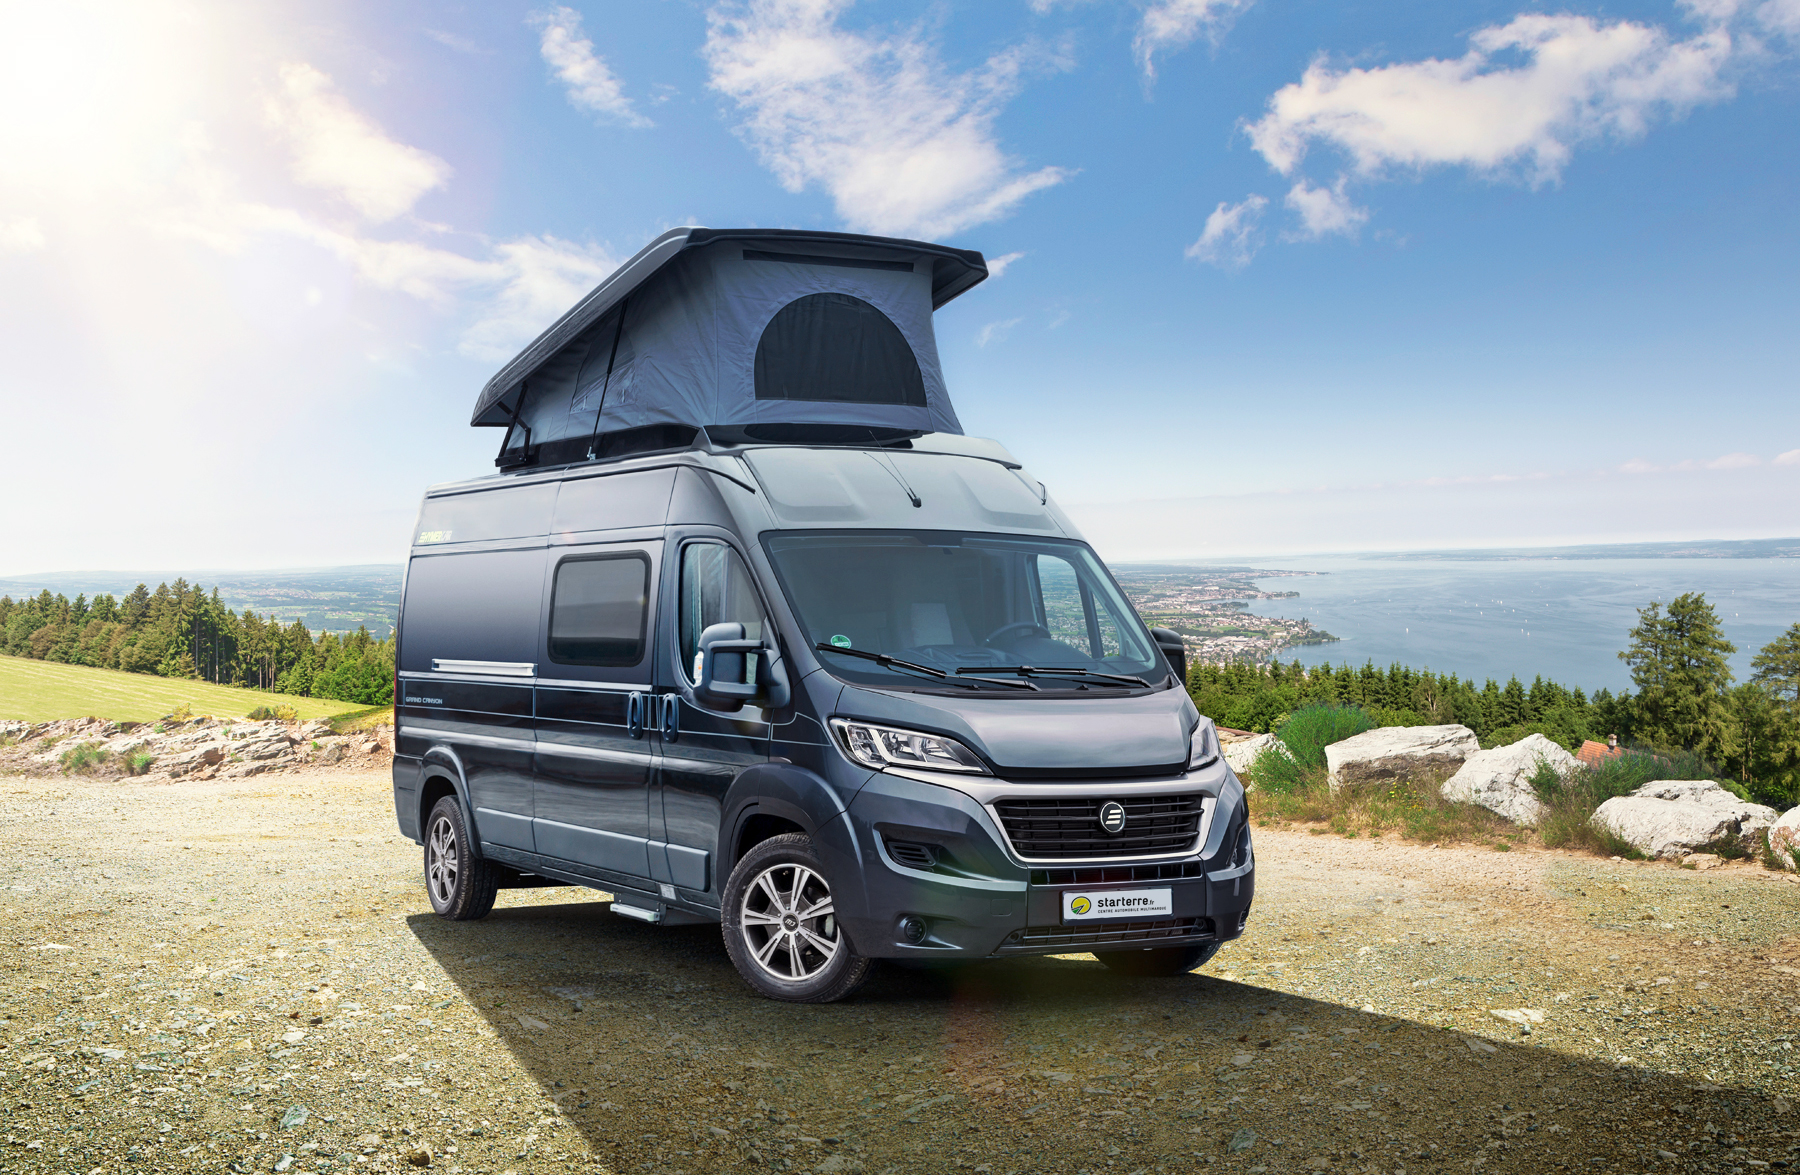 nouveaut s 2018 camping cars et fourgons am nag s salon vdl. Black Bedroom Furniture Sets. Home Design Ideas